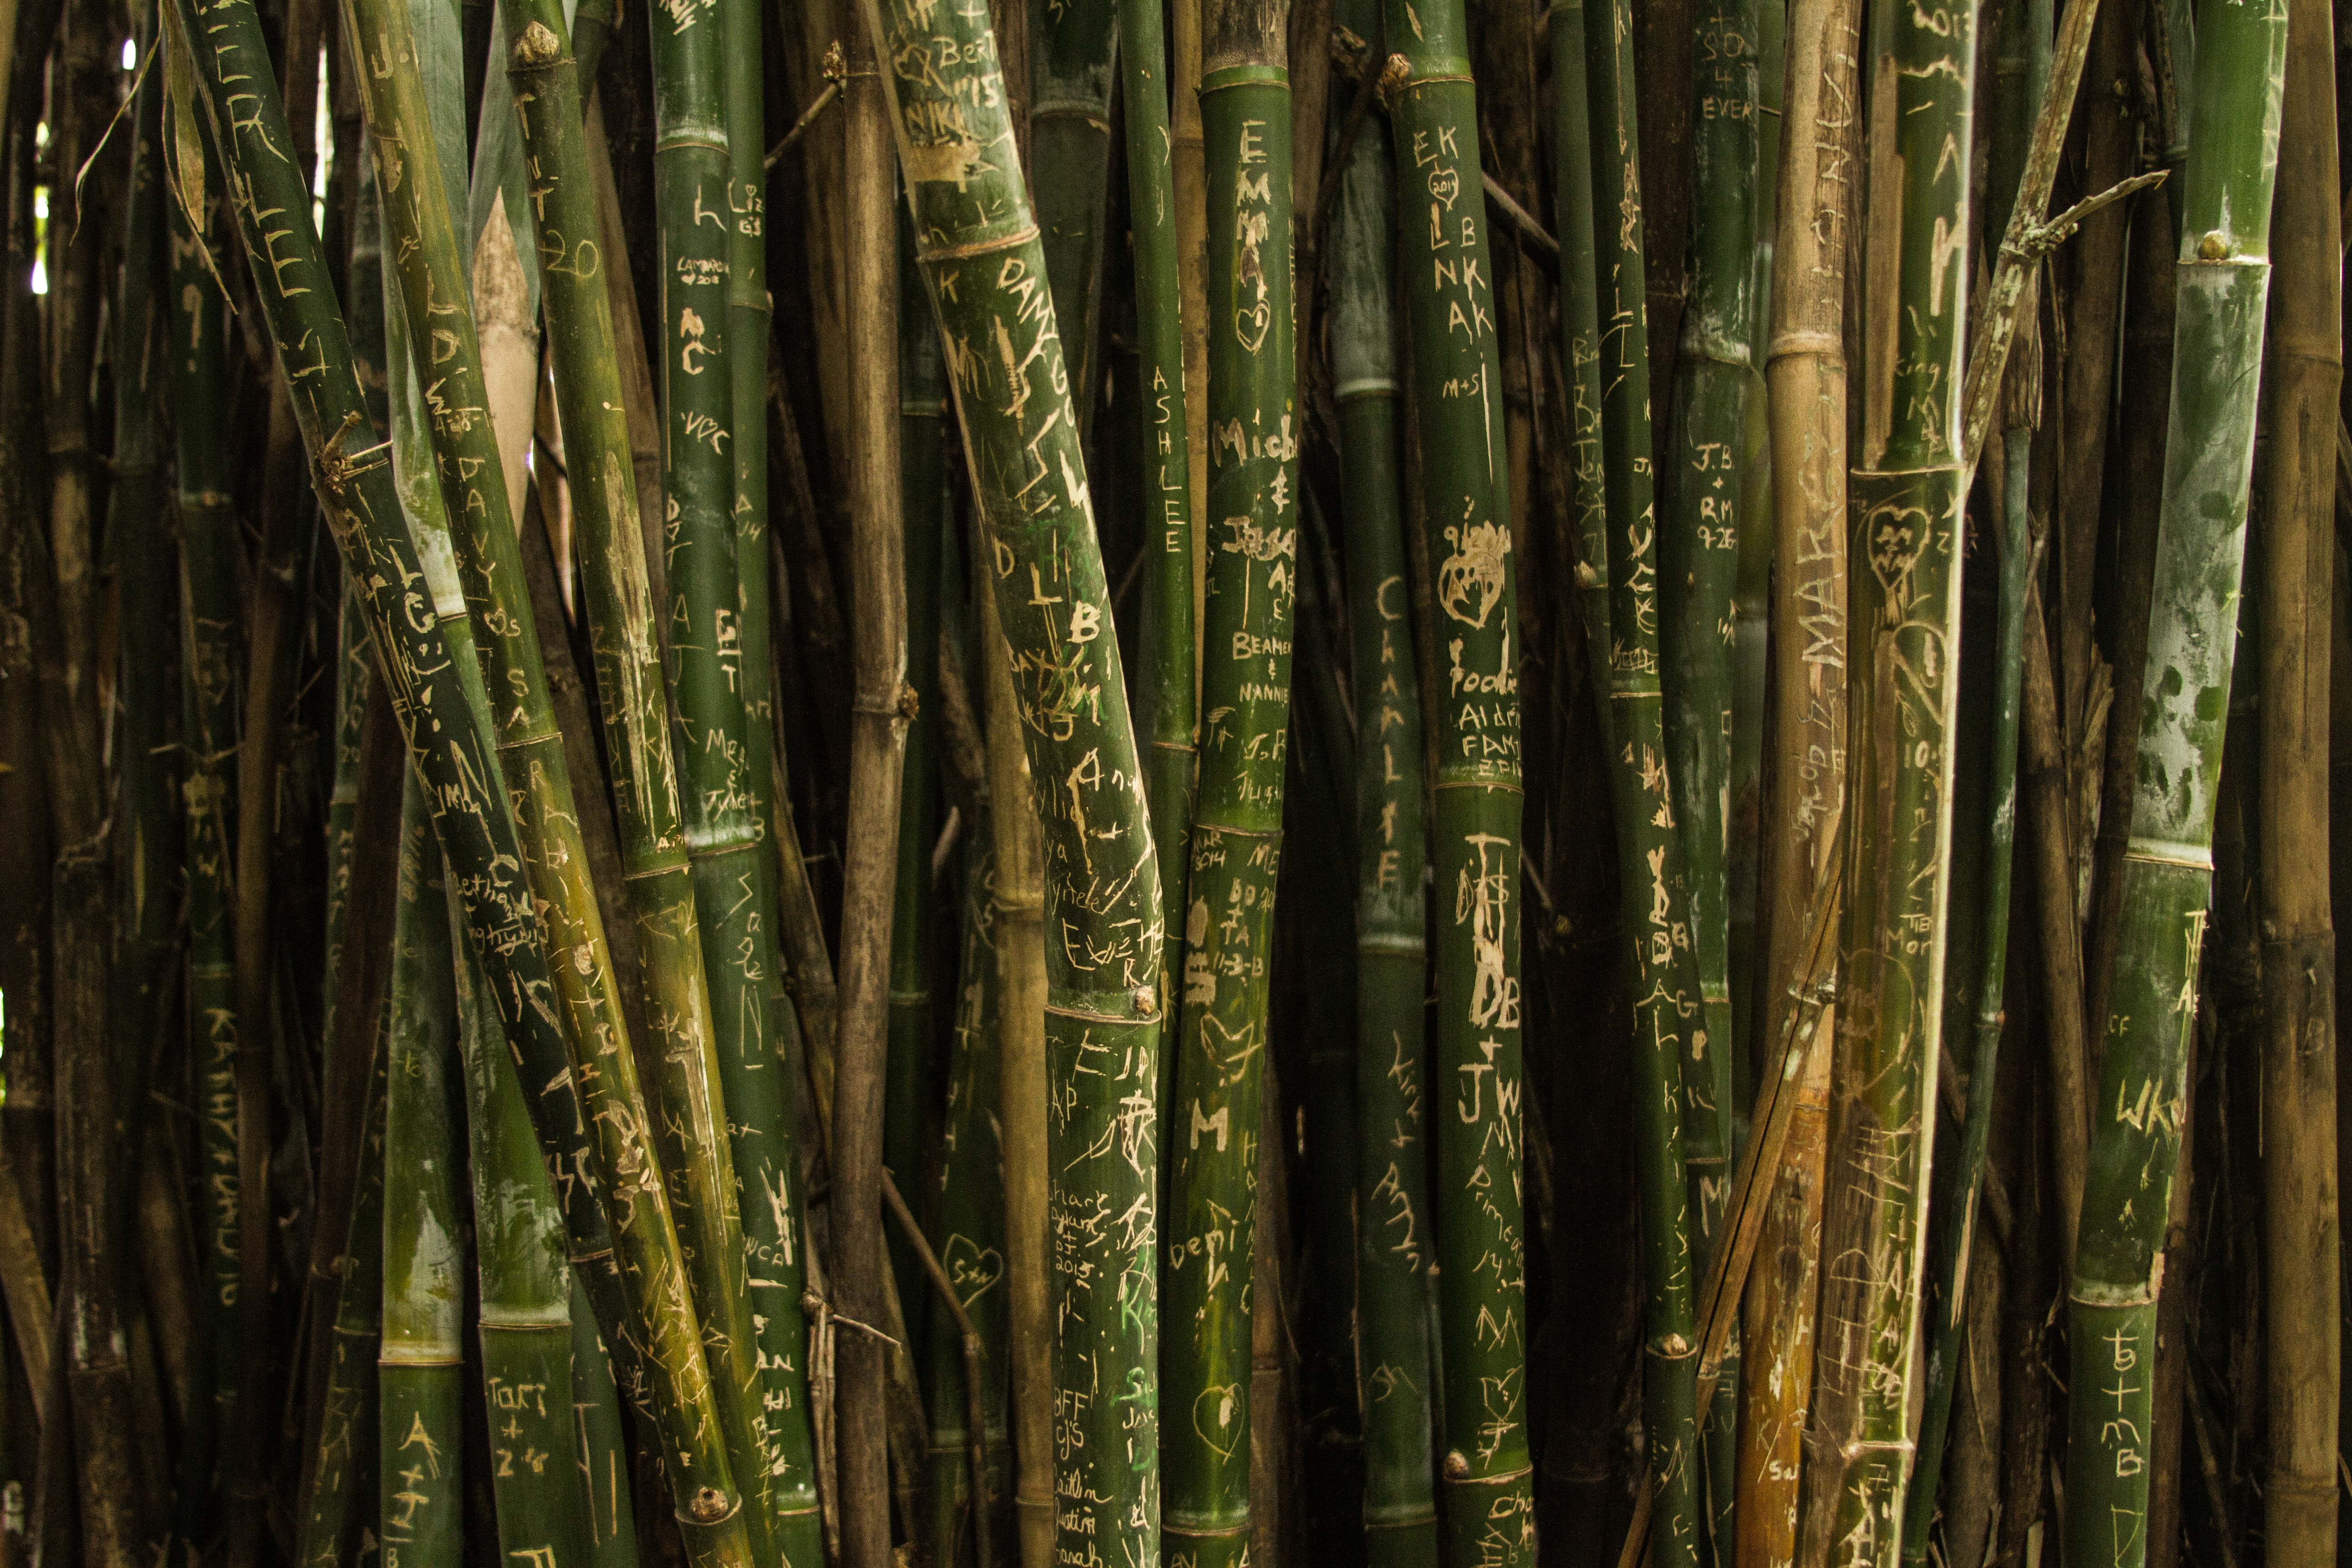 Bamboo stems covered with frivolous etchings